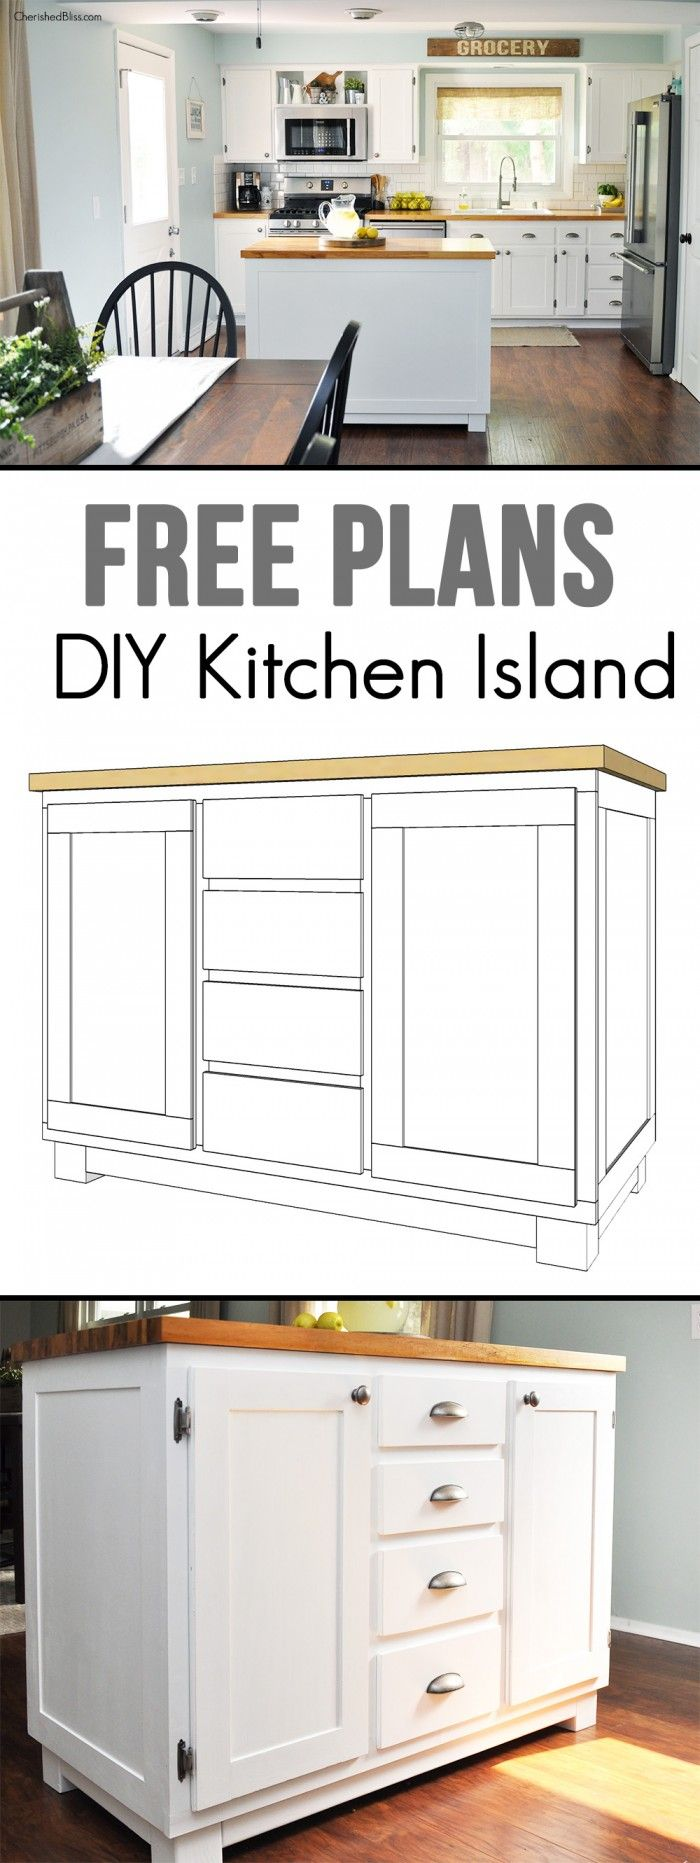 best 25+ diy kitchen island ideas on pinterest | kitchen island to